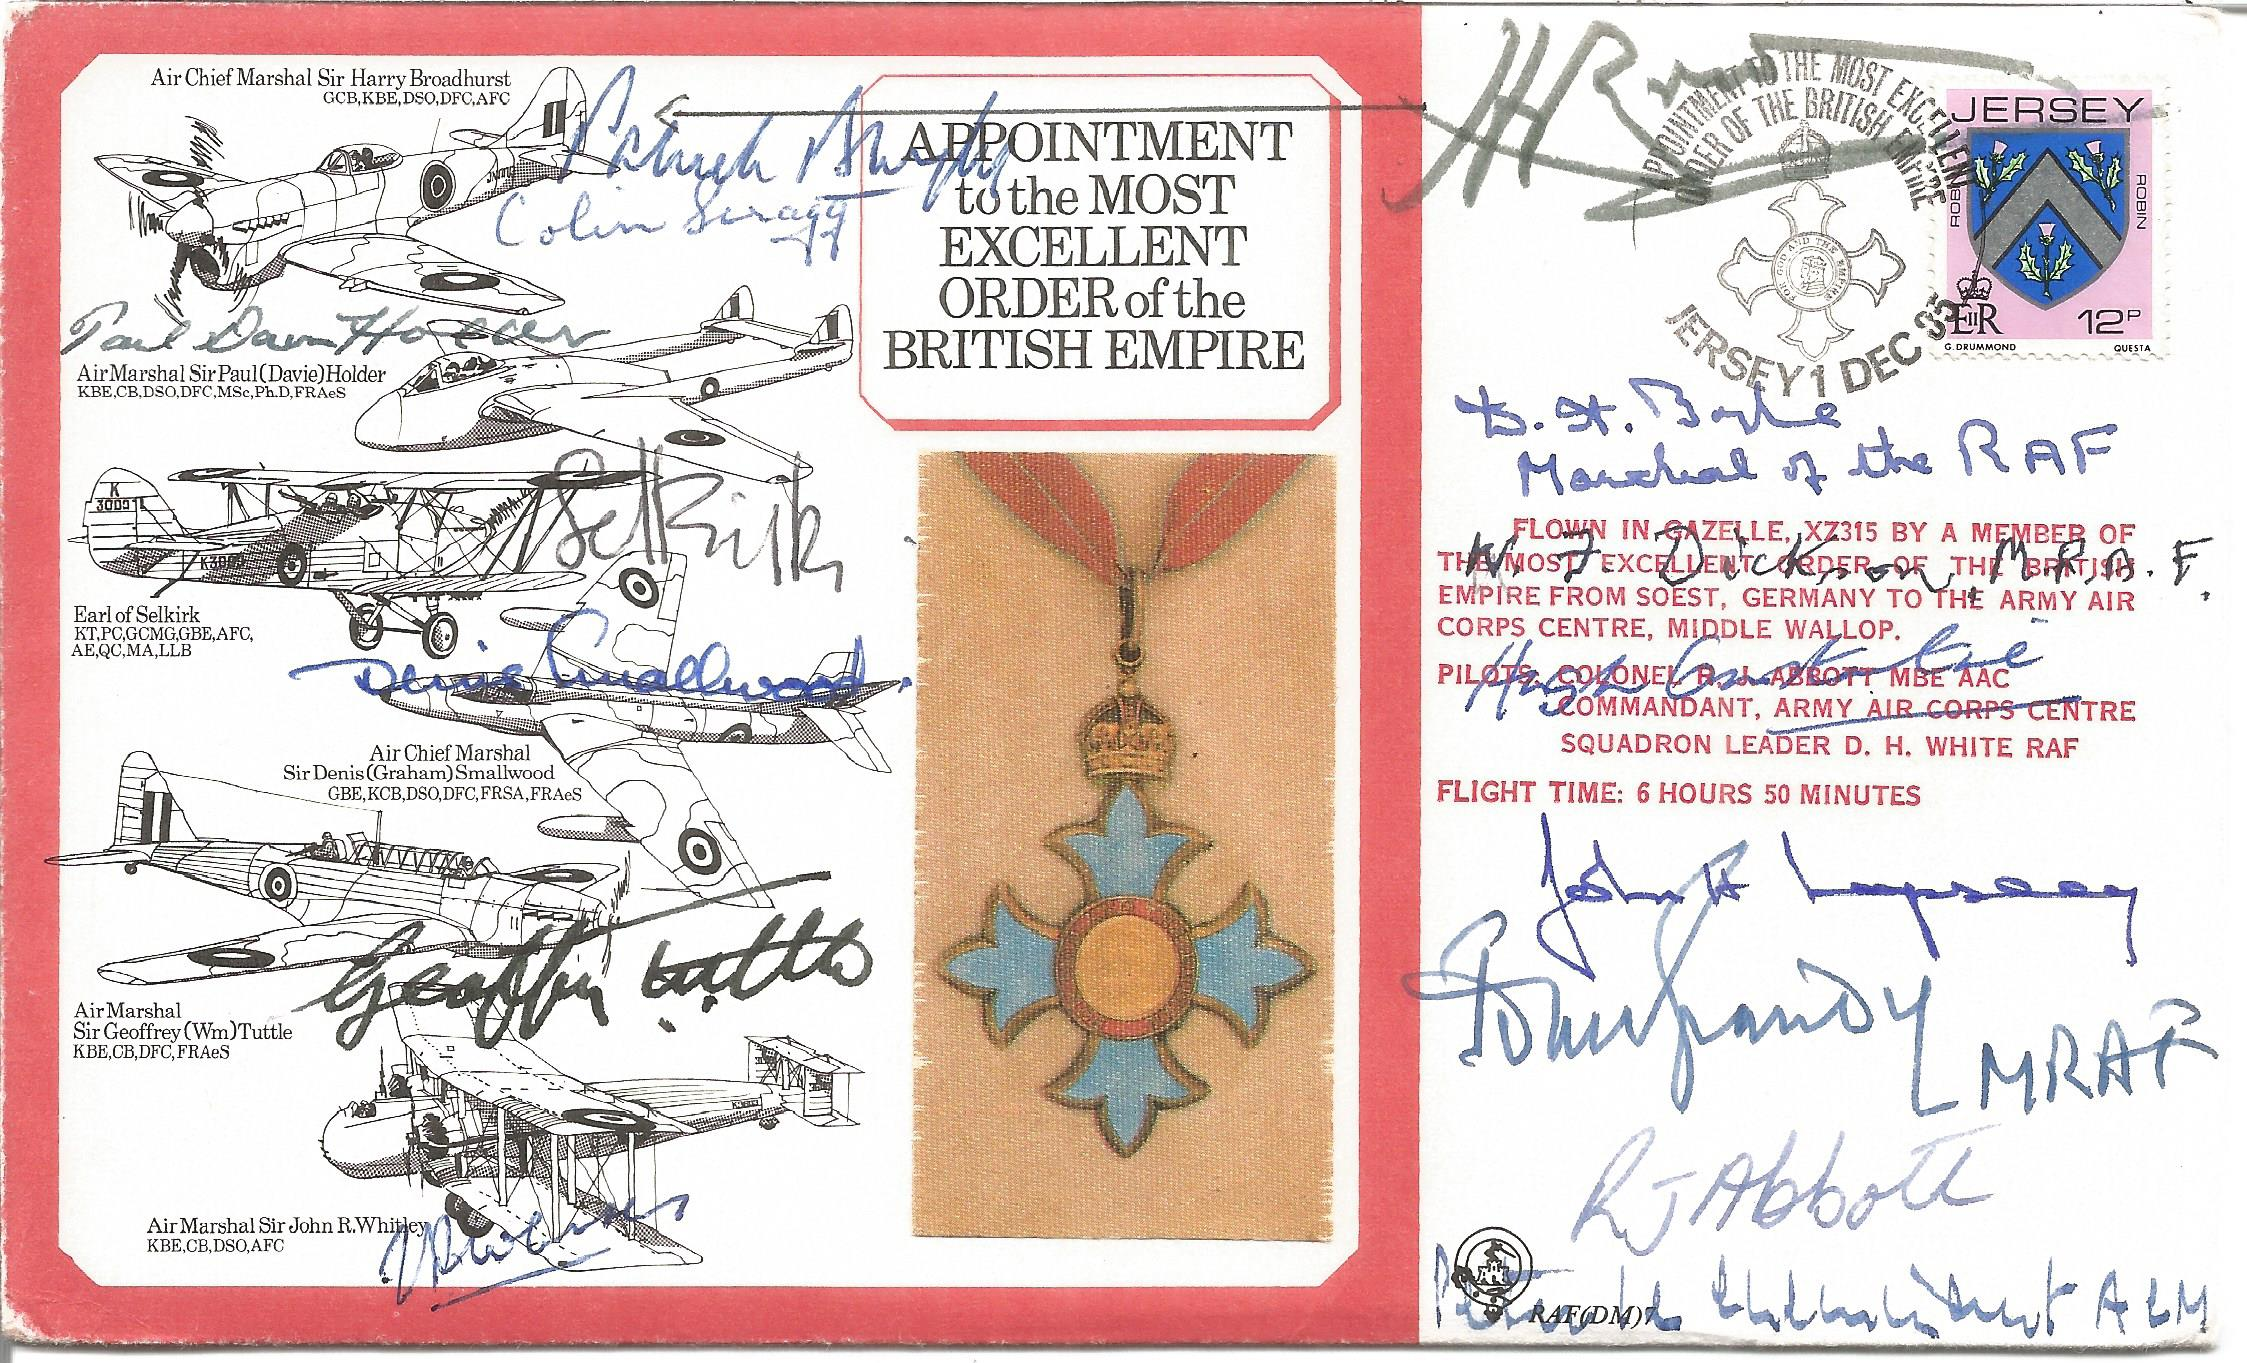 WW2 15 OBE winners multiple signed RAF medal cover. Includes Air Chief Marshal Sir H. Broadhurst,